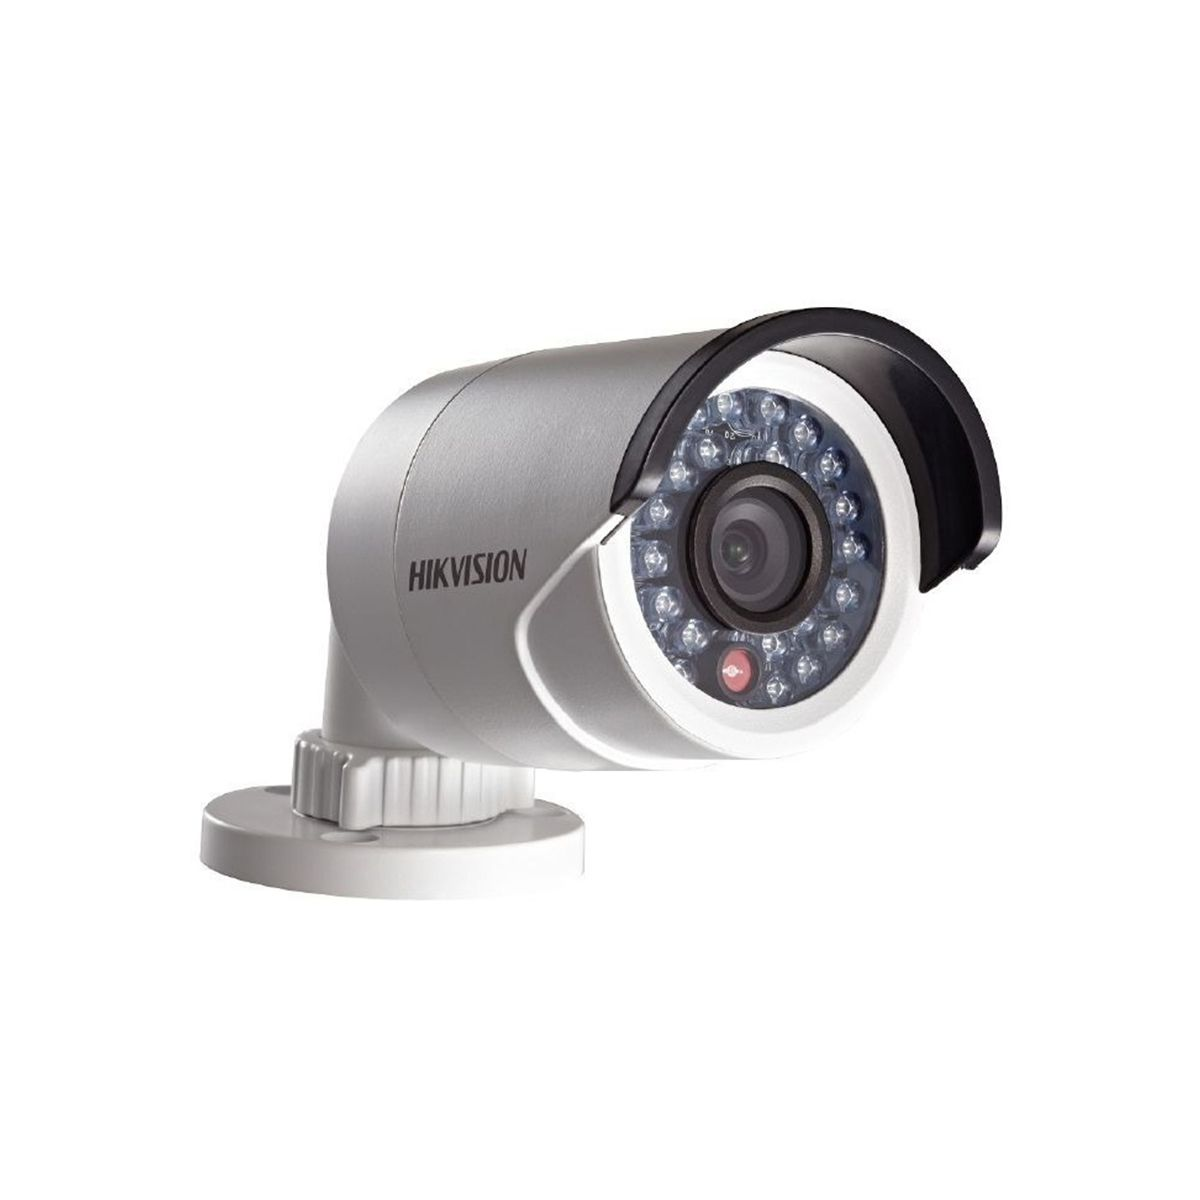 Cámaras IP WiFi Hikvision Tipo Bullet DS-2CD2010F-IW